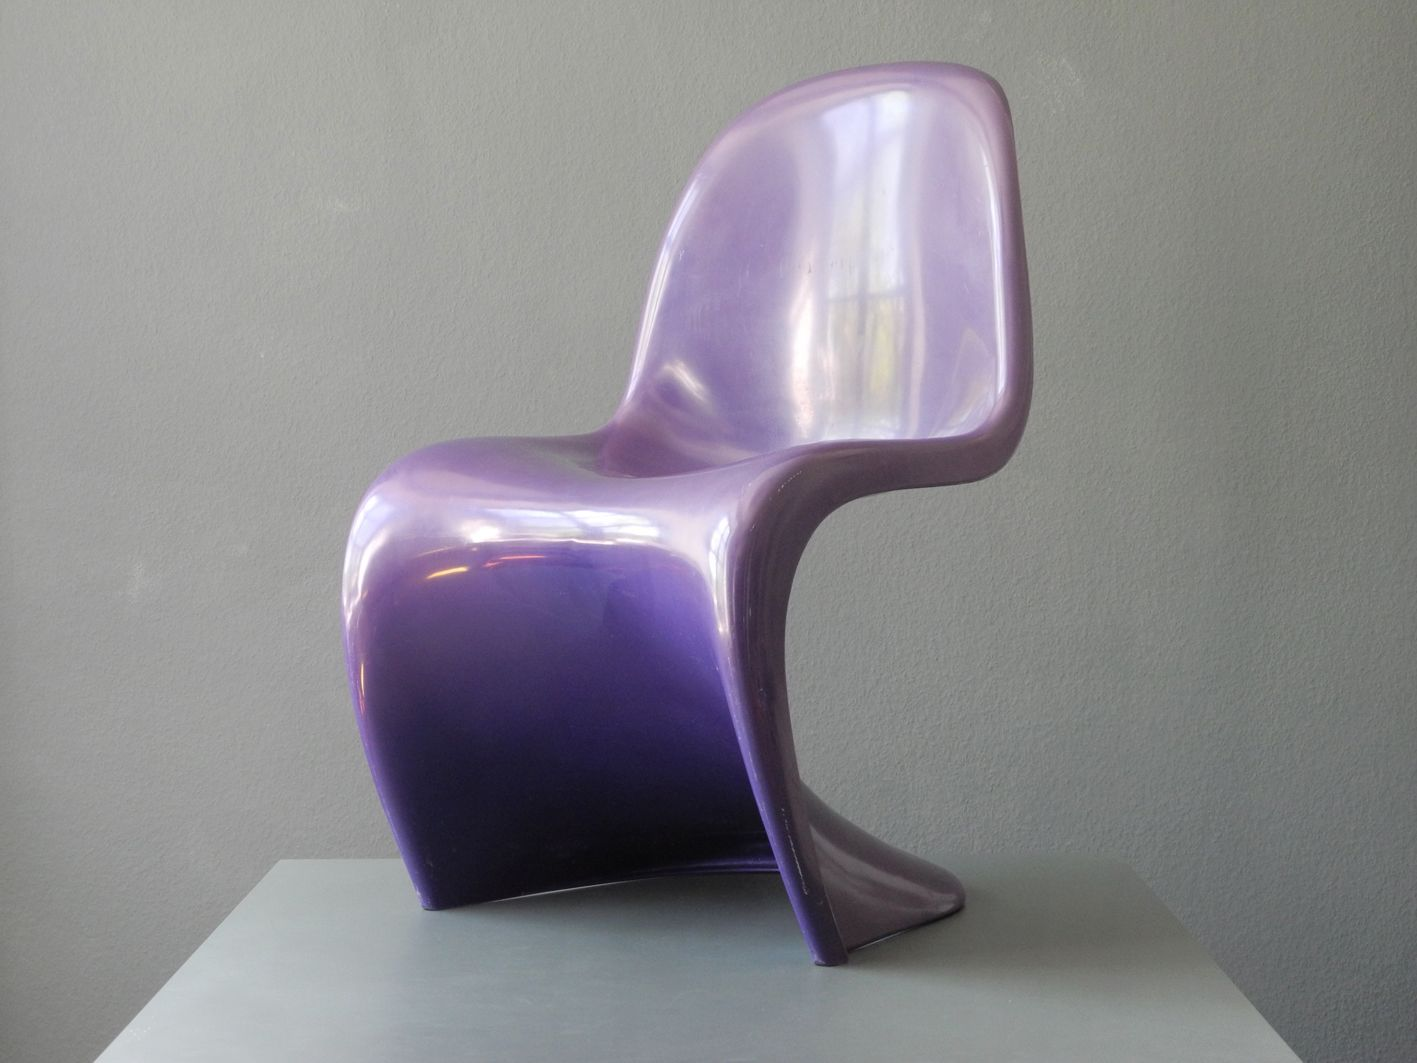 purple panton chair by verner panton for herman miller fehlbaum 1976 bei pamono kaufen. Black Bedroom Furniture Sets. Home Design Ideas